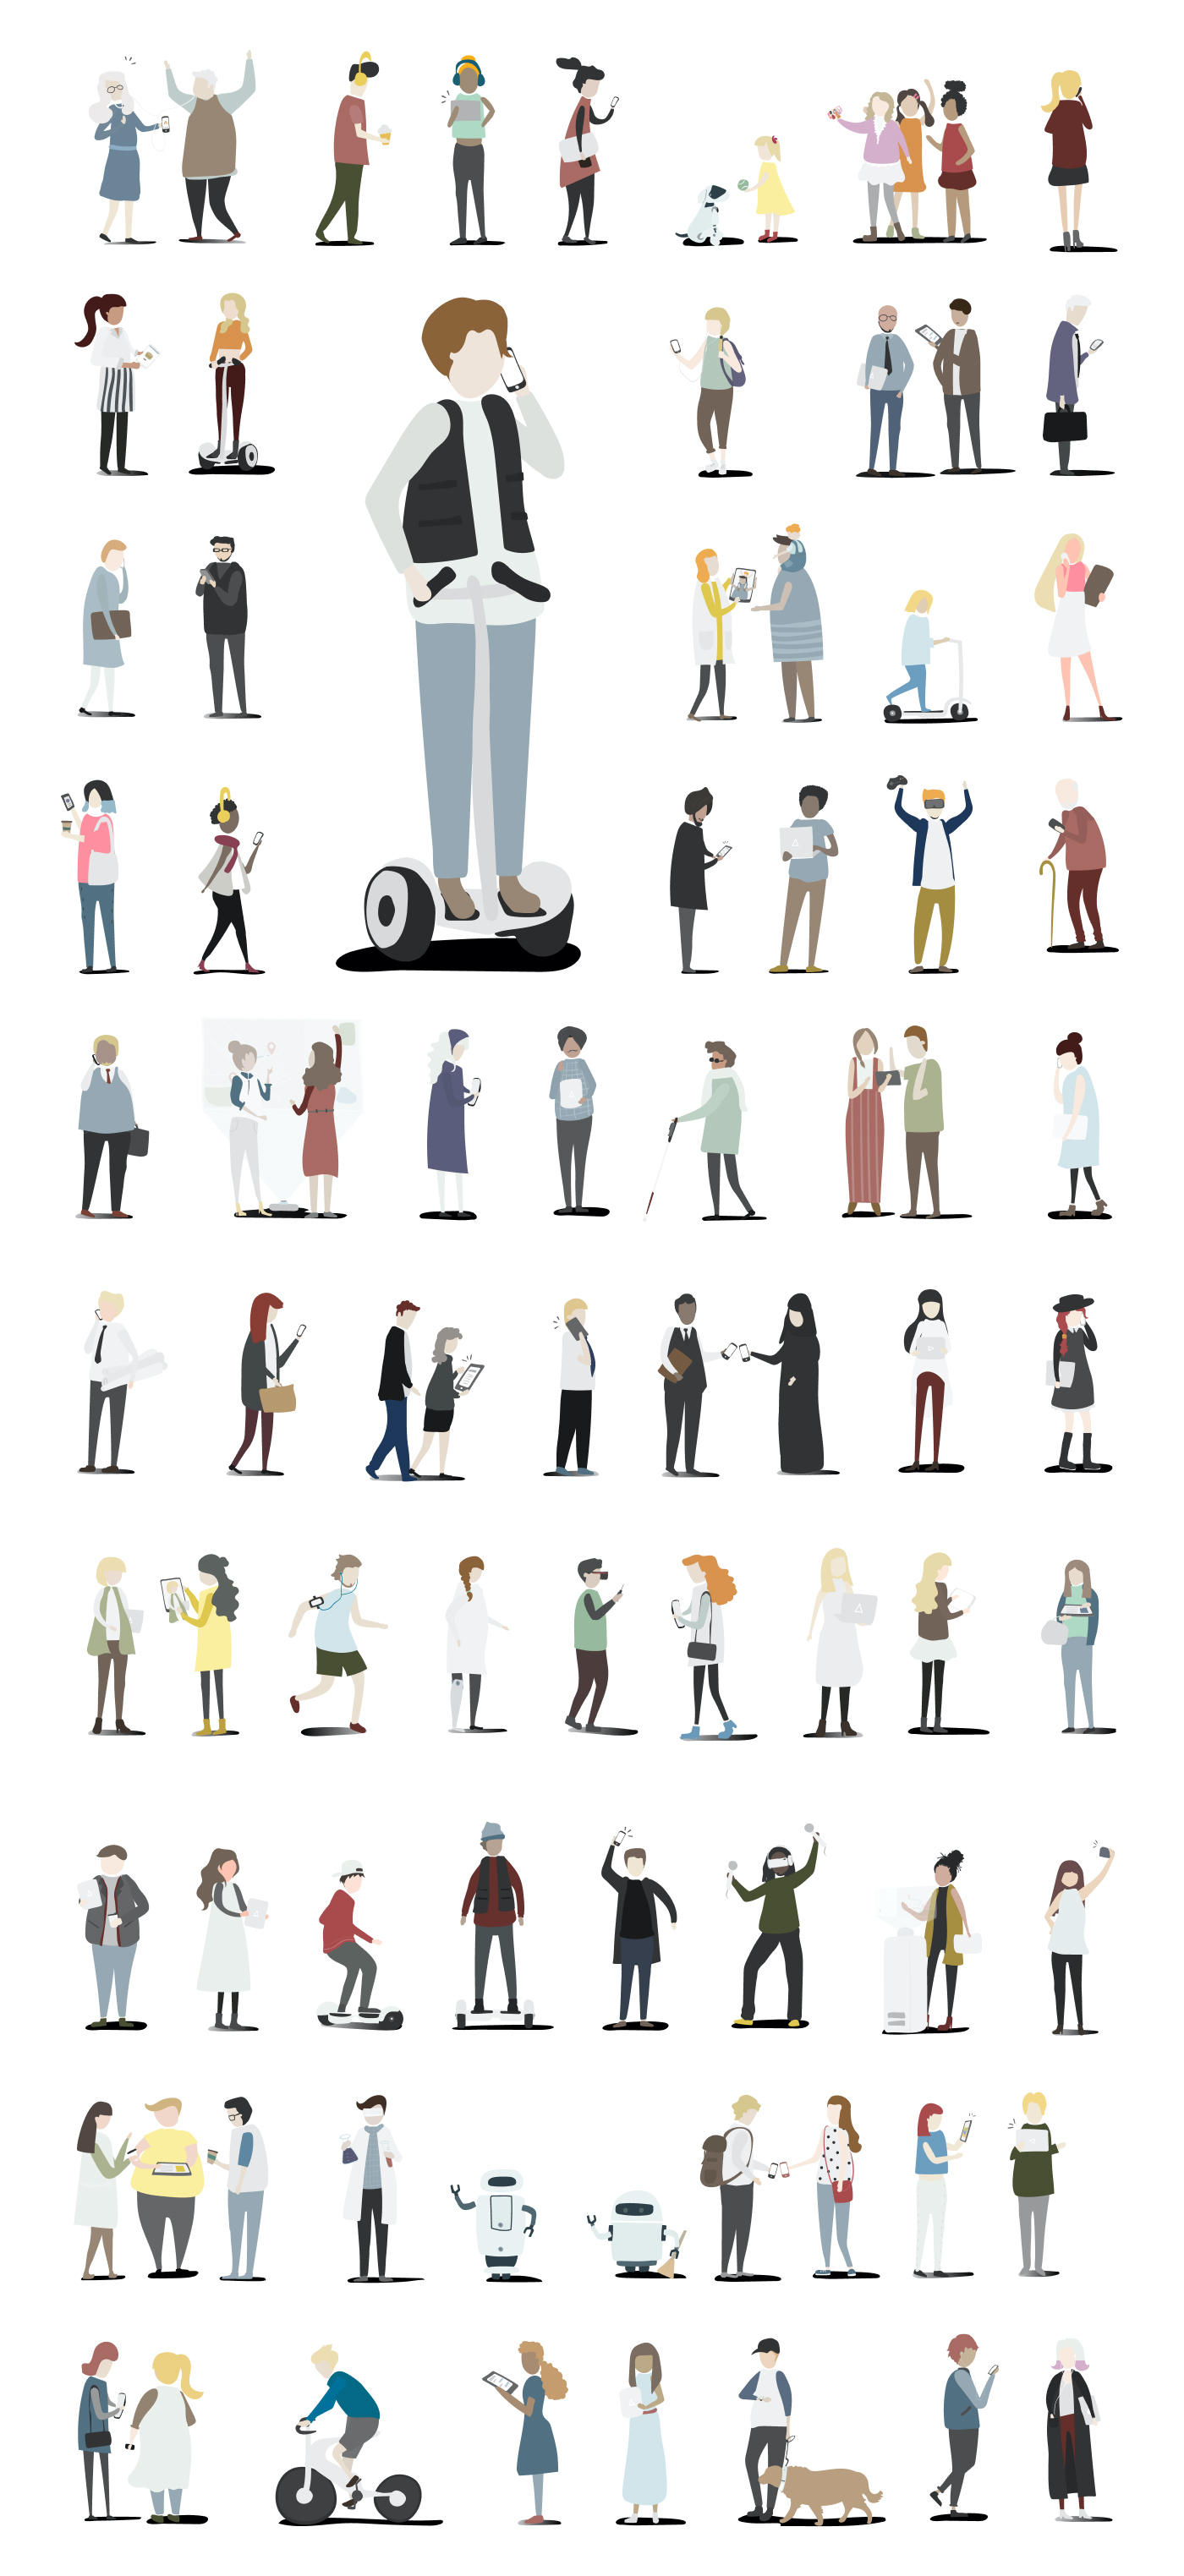 Vector Character Illustrations - A good collection of 78 illustrations showing people in action - dancing, communicating, driving, taking selfies, etc. It's always good to have illustrations at hand and with this nice customizable resource, you can include these characters in various projects.